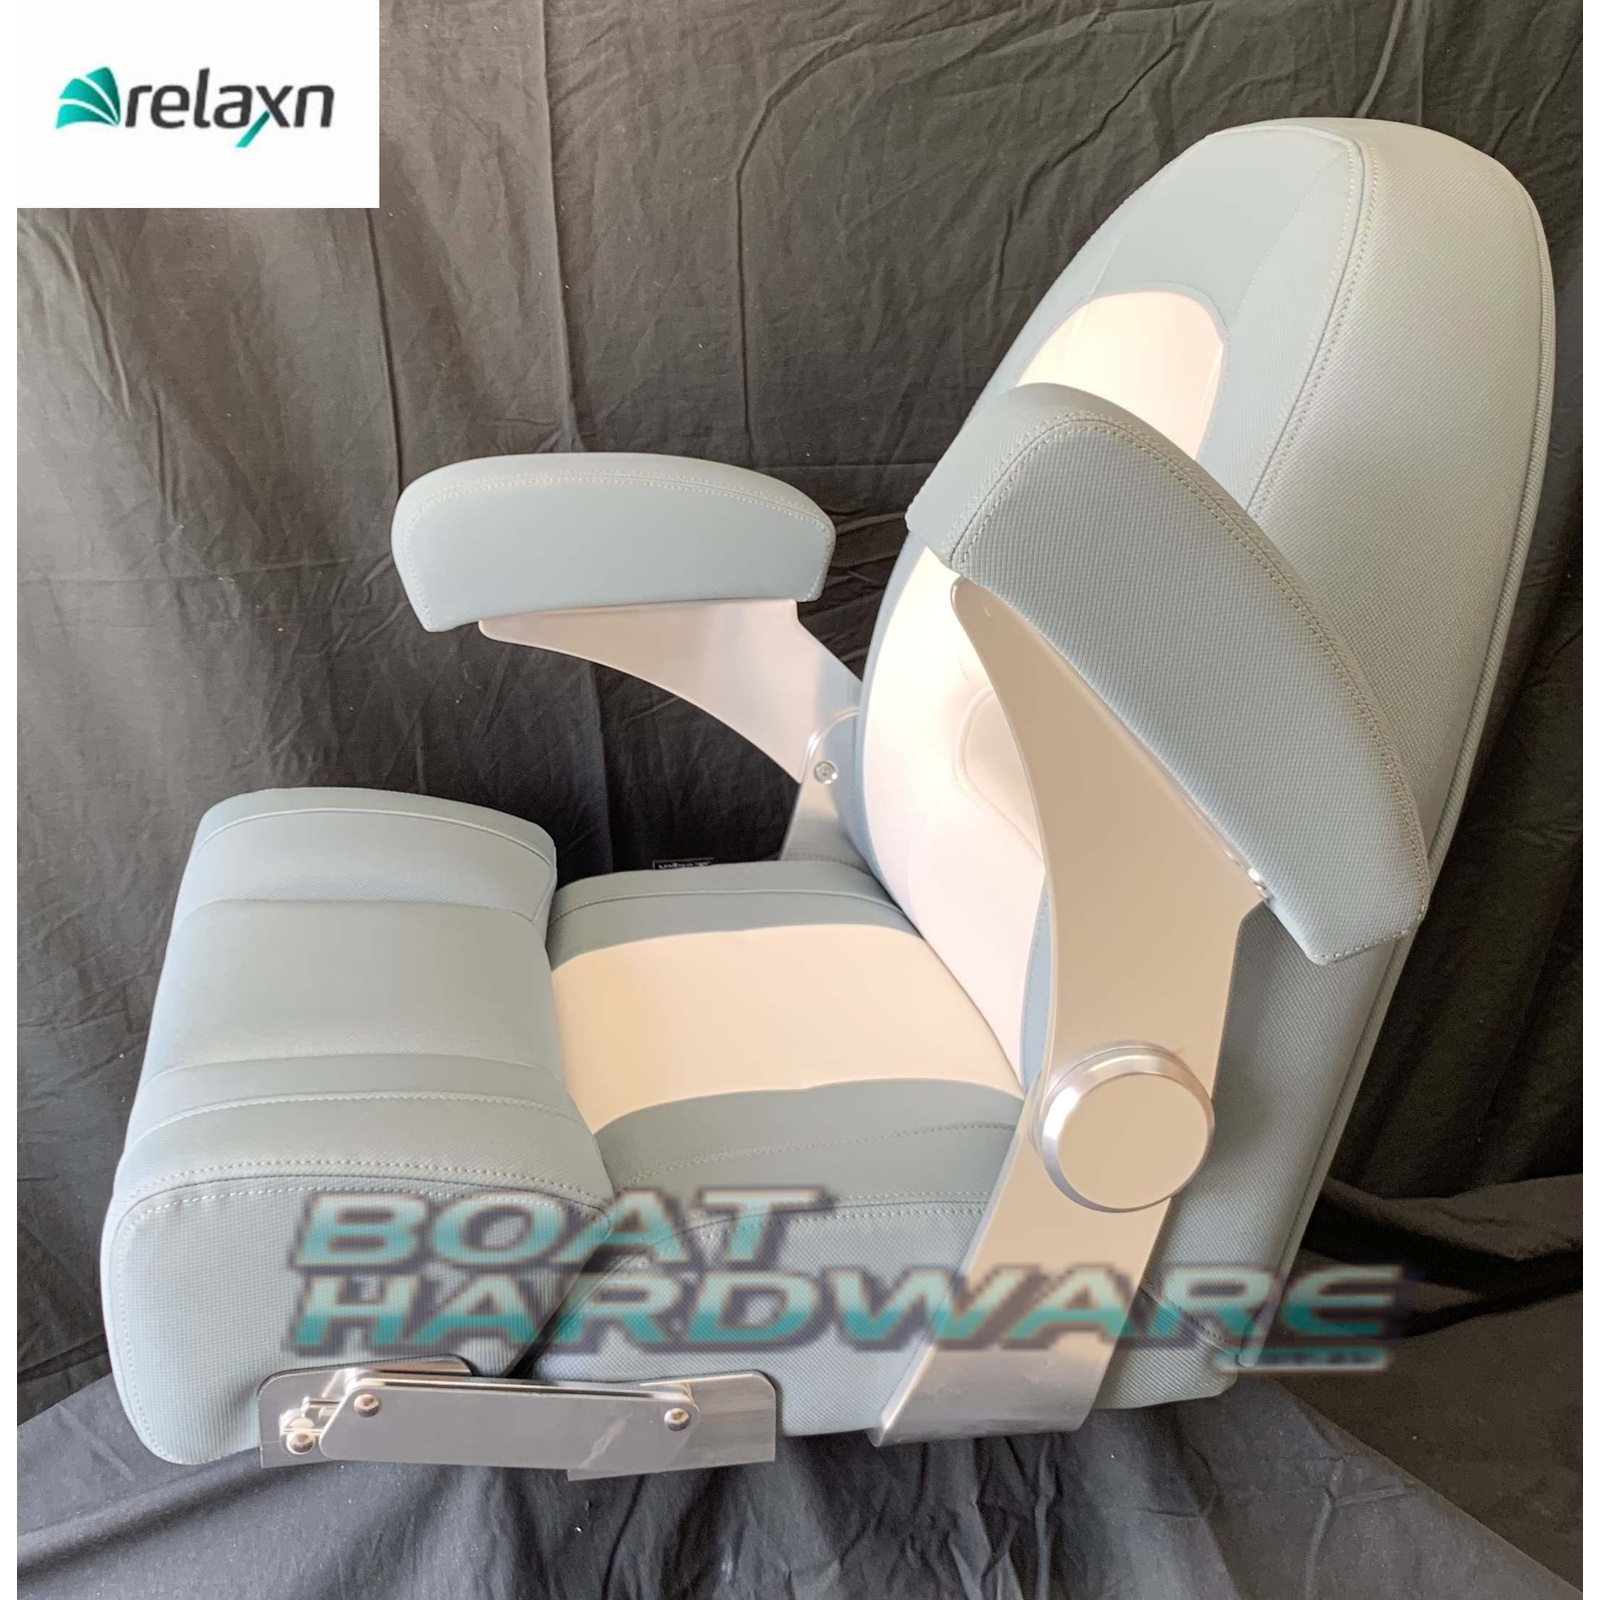 High Back Boat Seat - Cruiser Series (Relaxn) Grey/White